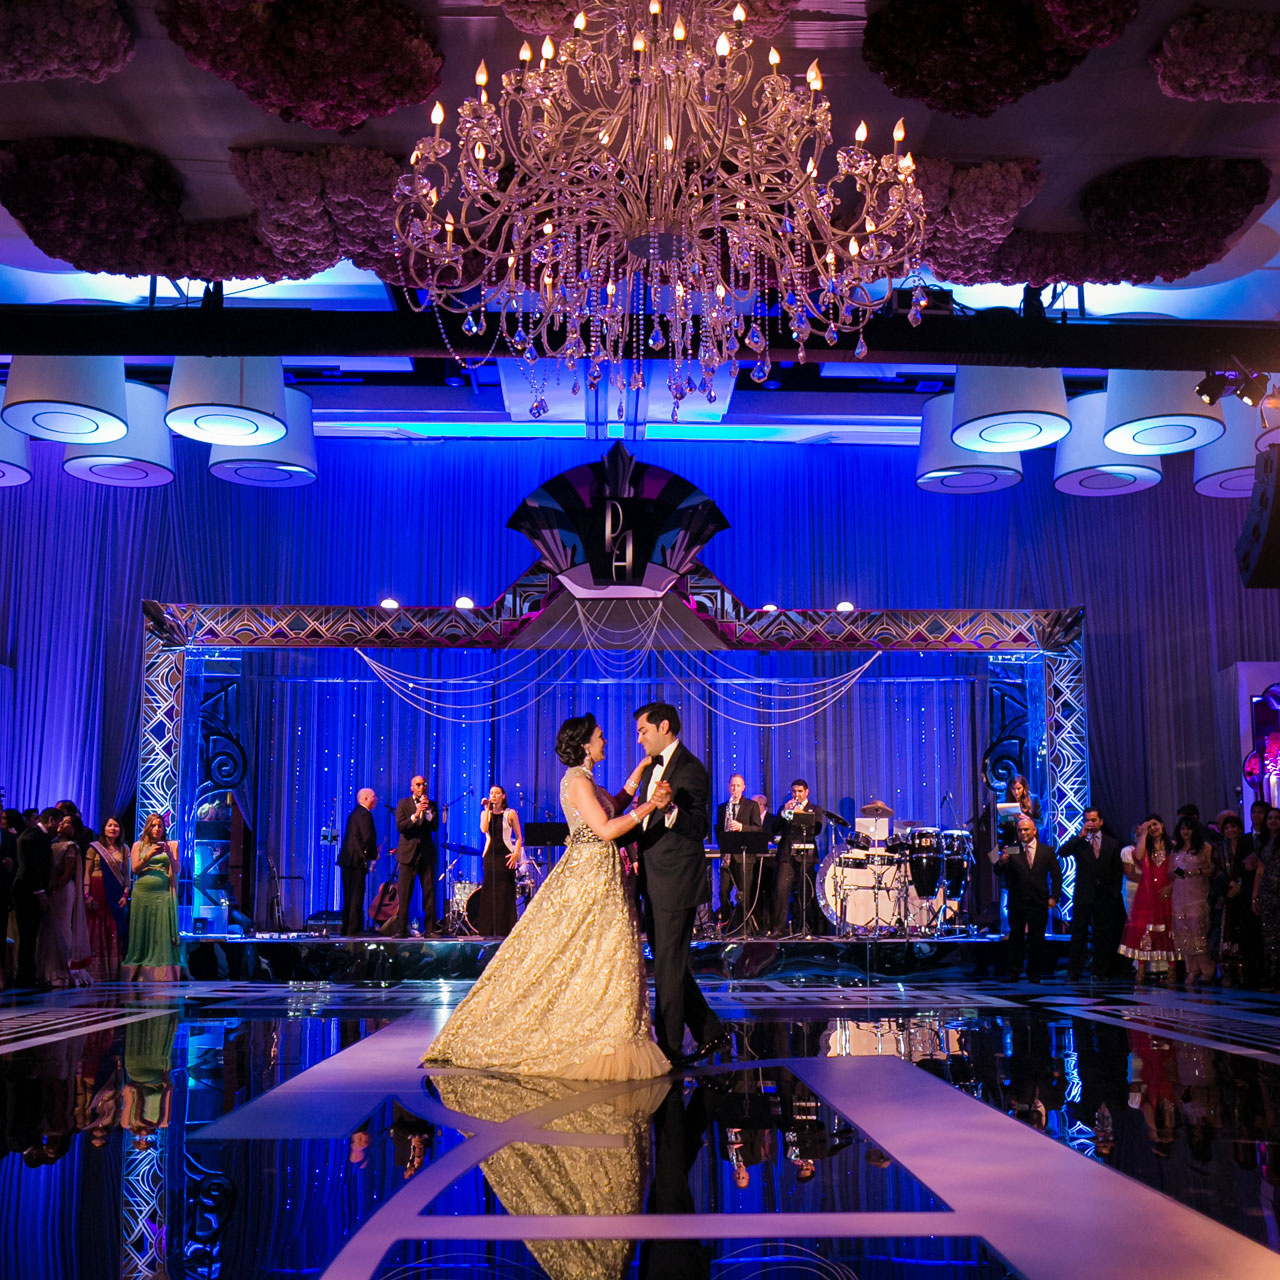 Palos Verdes Wedding Venues: Terranea Resort Indian Wedding Reception